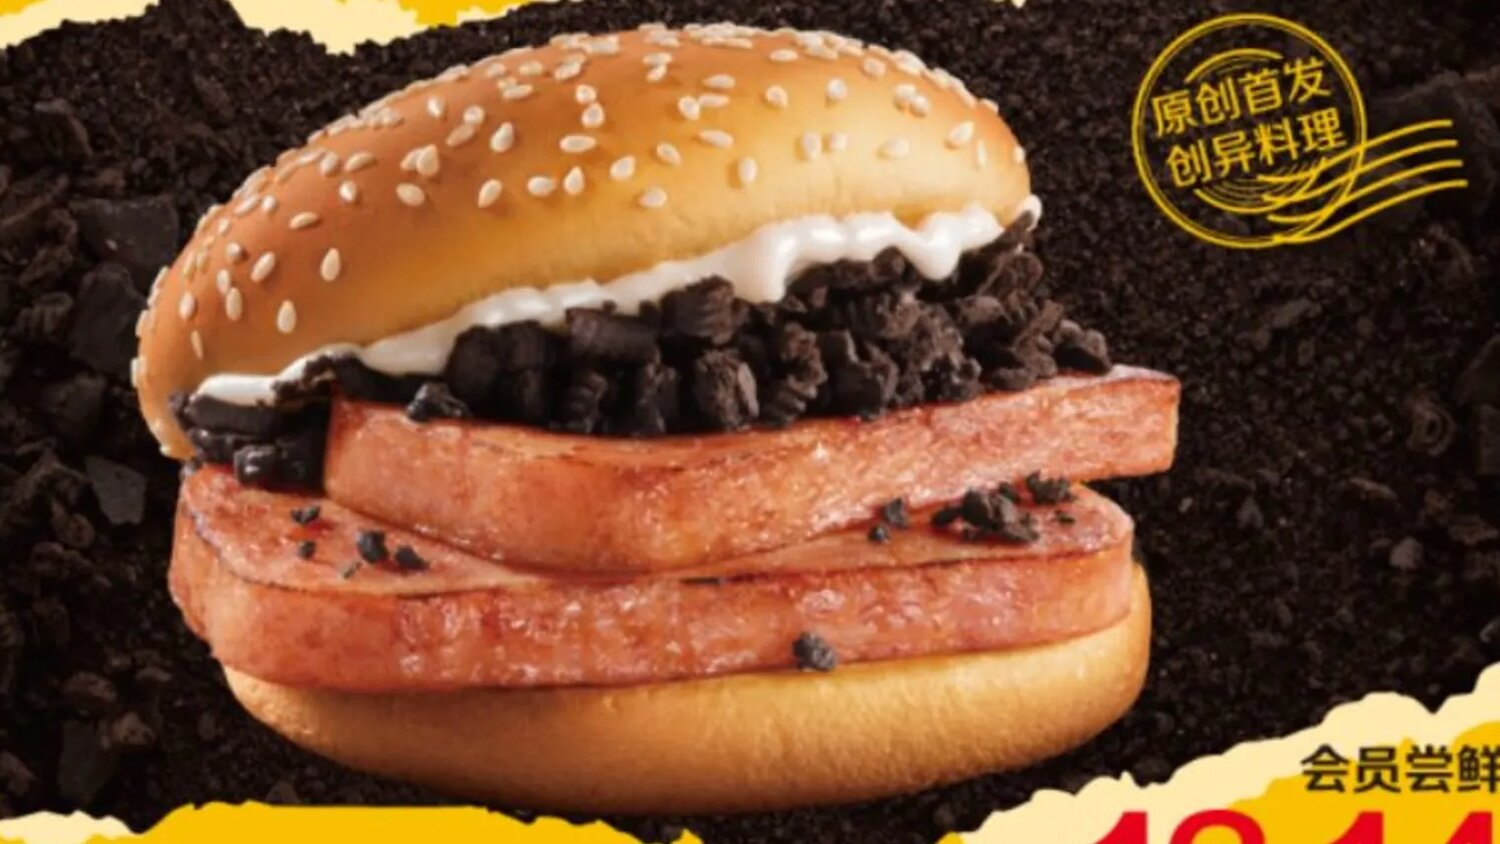 McDonald's Spam Burger